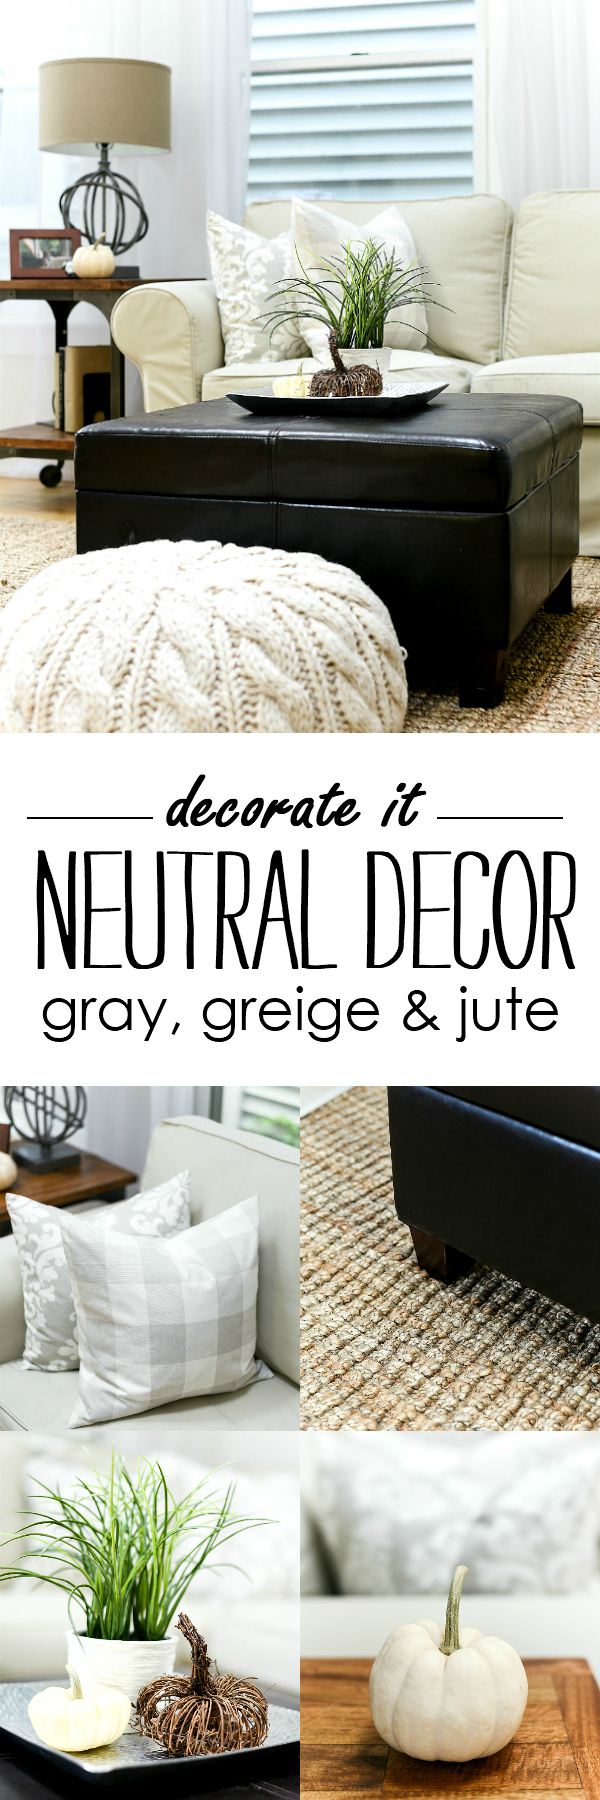 Neutral Decor in Gray, Greige, Jute Rugs